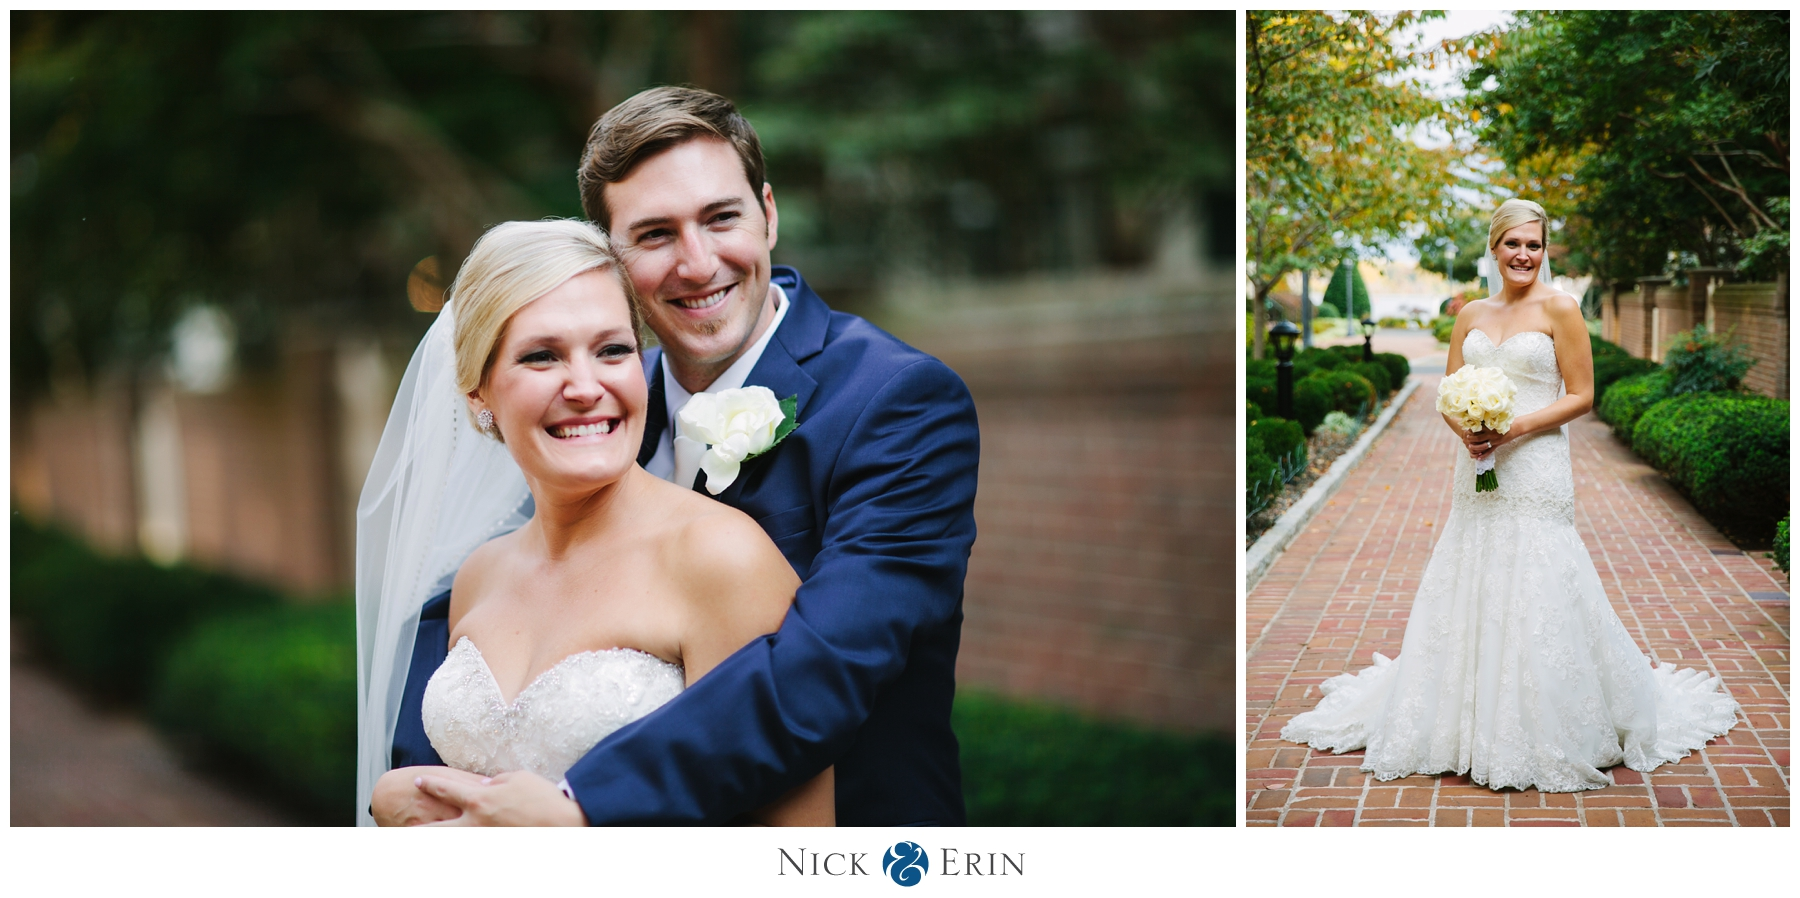 Donner_Photography_Torpedo Factory Wedding_Courtney and Scott_0006